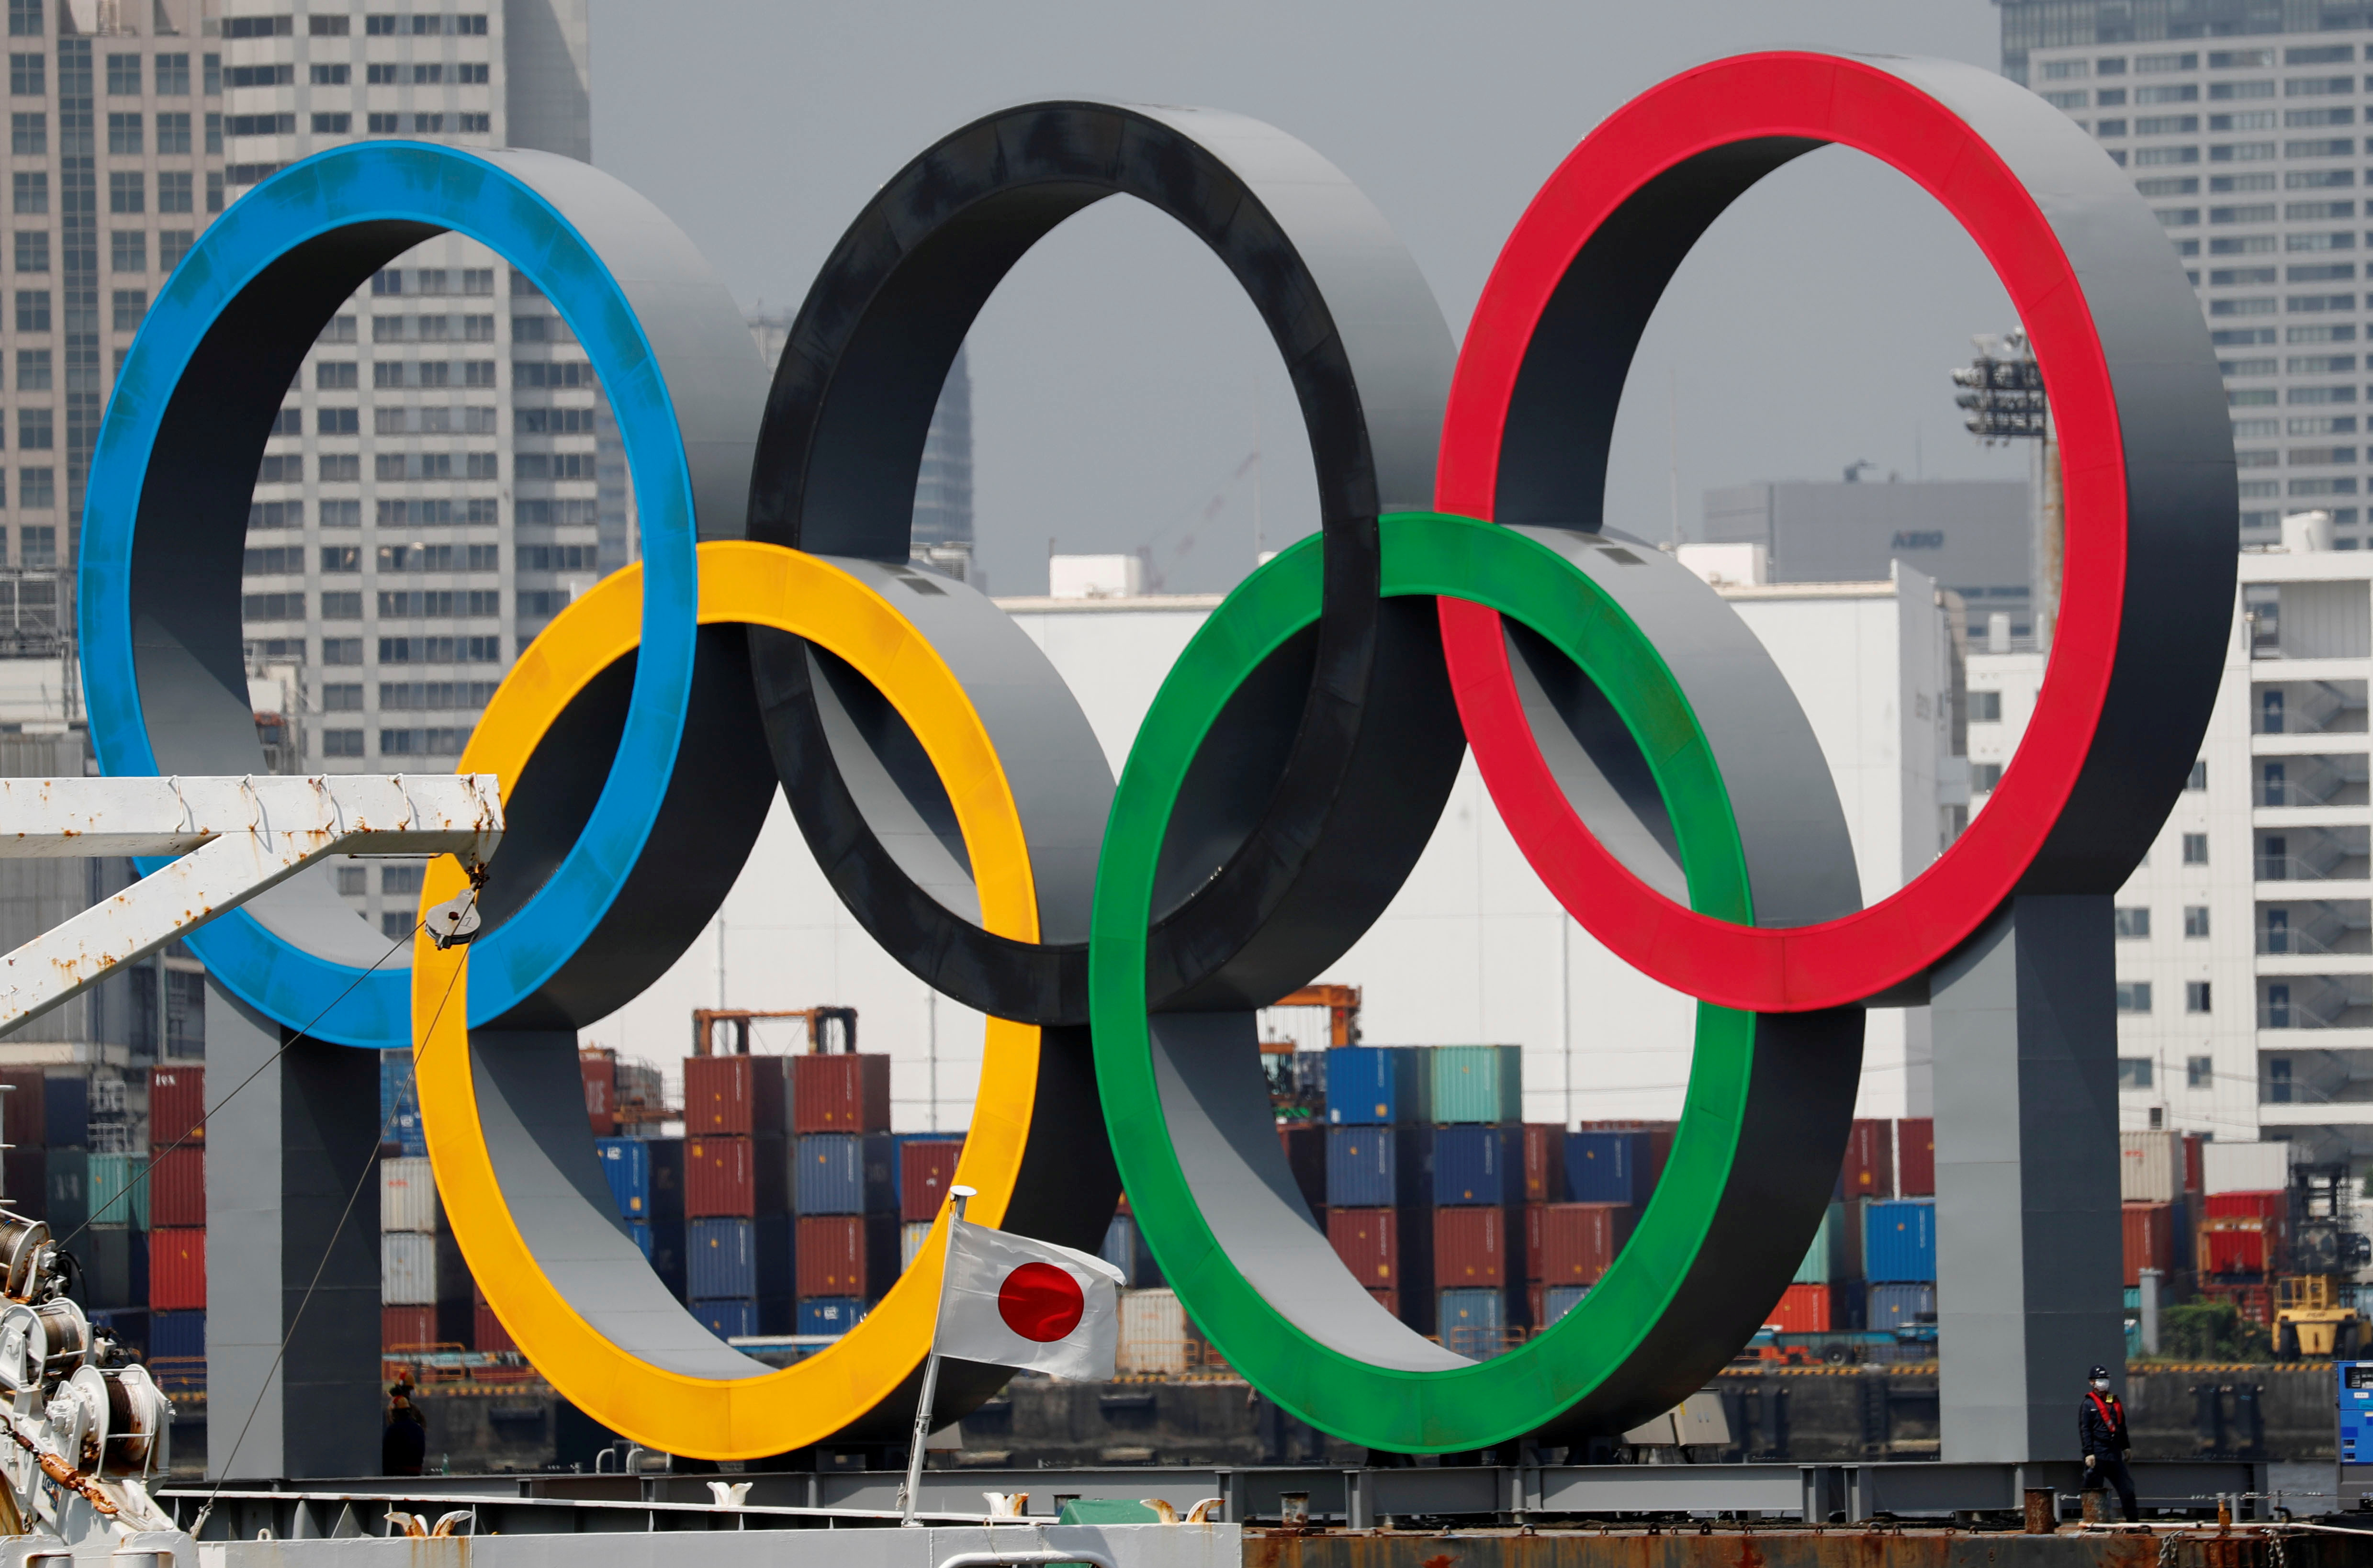 The giant Olympic rings, which are being temporarily removed for maintenance, are seen behind Japan's national flag, amid the coronavirus disease (COVID-19) outbreak, at the waterfront area at Odaiba Marine Park in Tokyo, Japan August 6, 2020. REUTERS/Kim Kyung-Hoon/File Photo